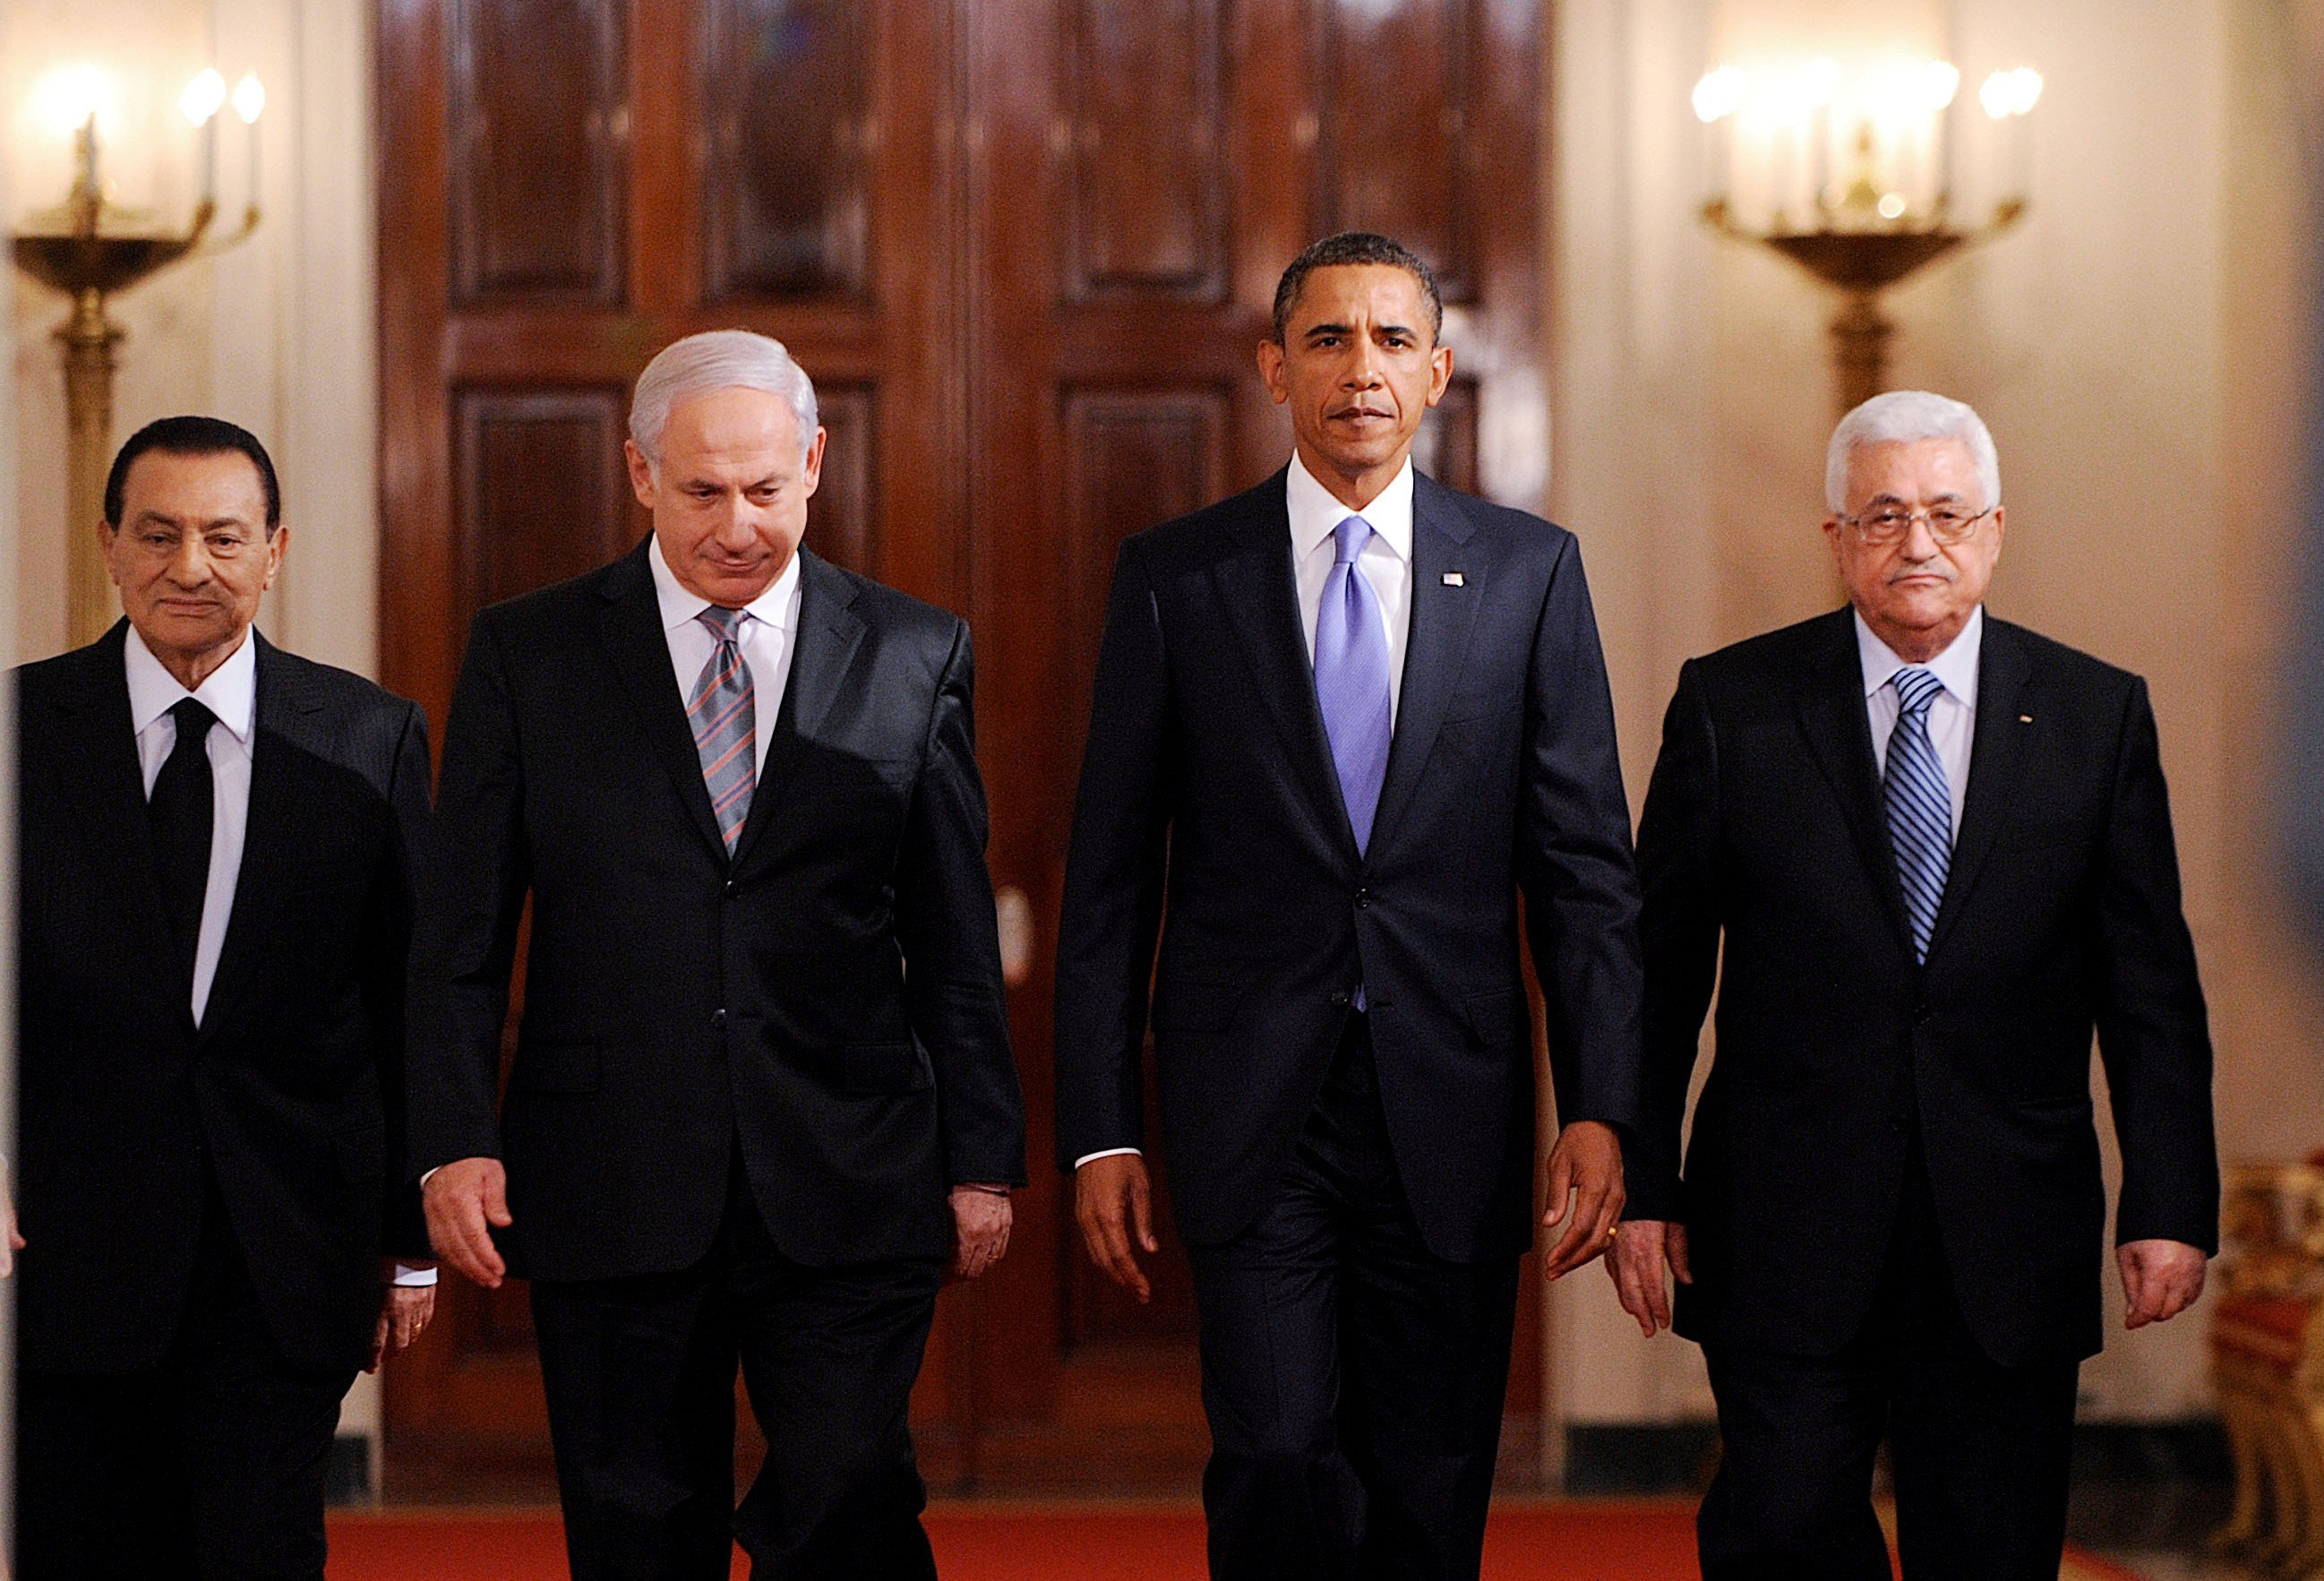 US President Barack Obama walks with Middle East leaders in the East Room of the White House in Washington, DC, USA, on 1 September, 2010 (Reuters)